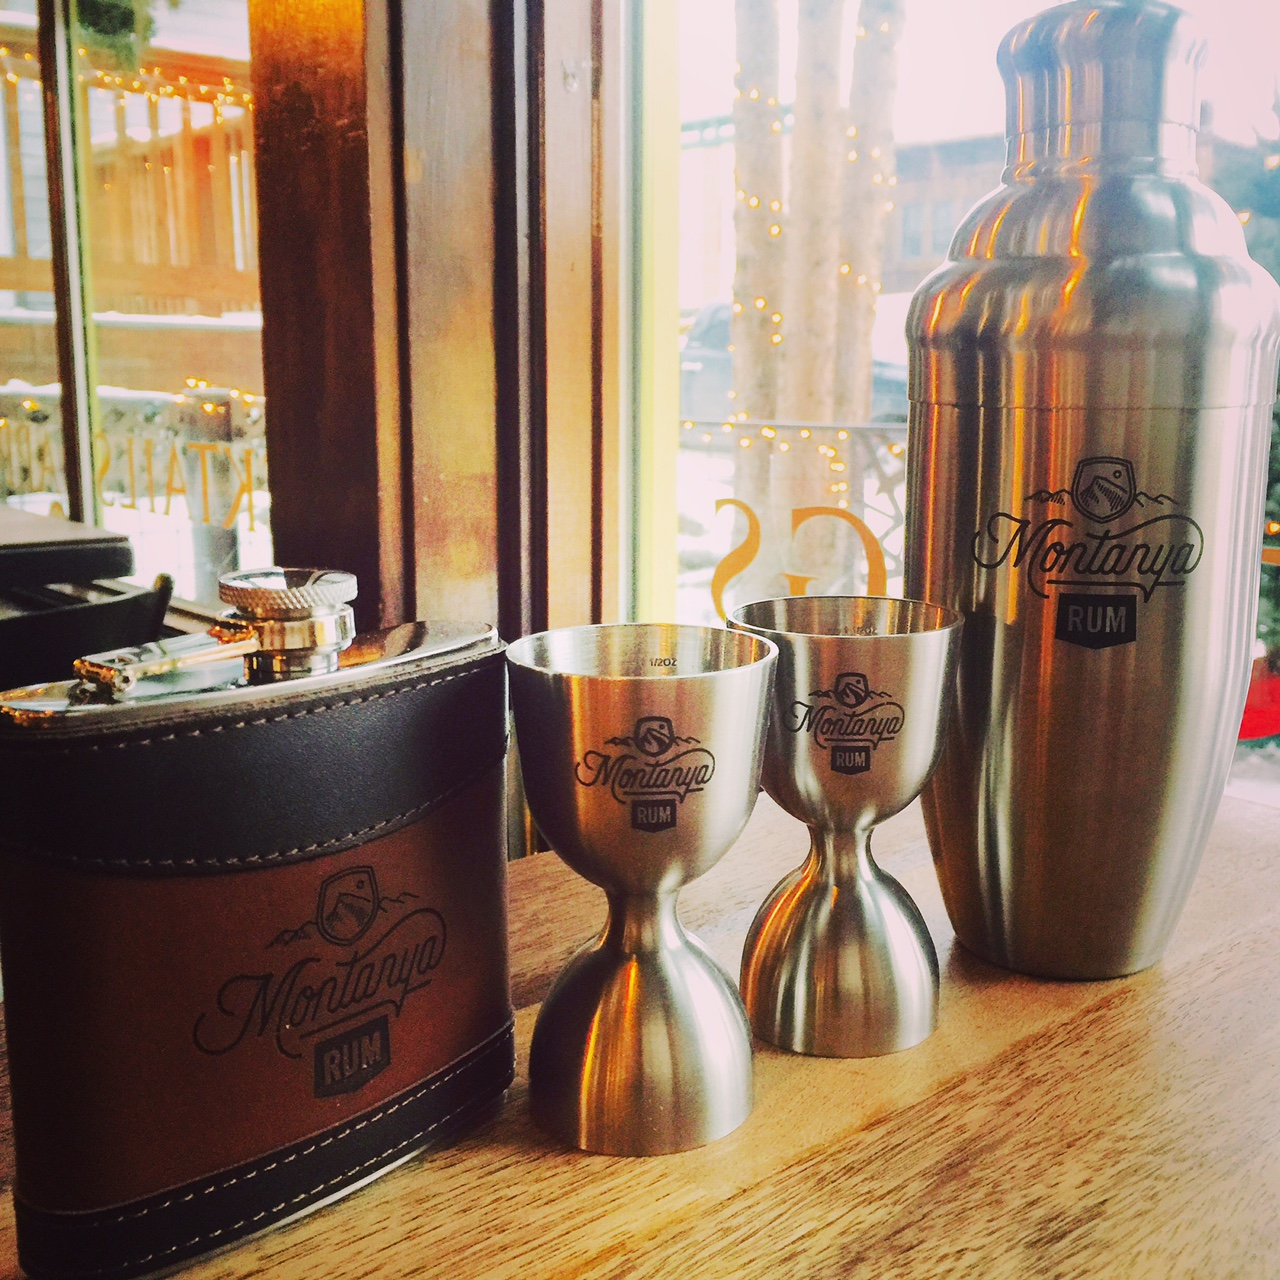 Montanya Rum logo barware - two tone leather flask at 120 ml, heavy stainless jigger, high quality three part shaker!